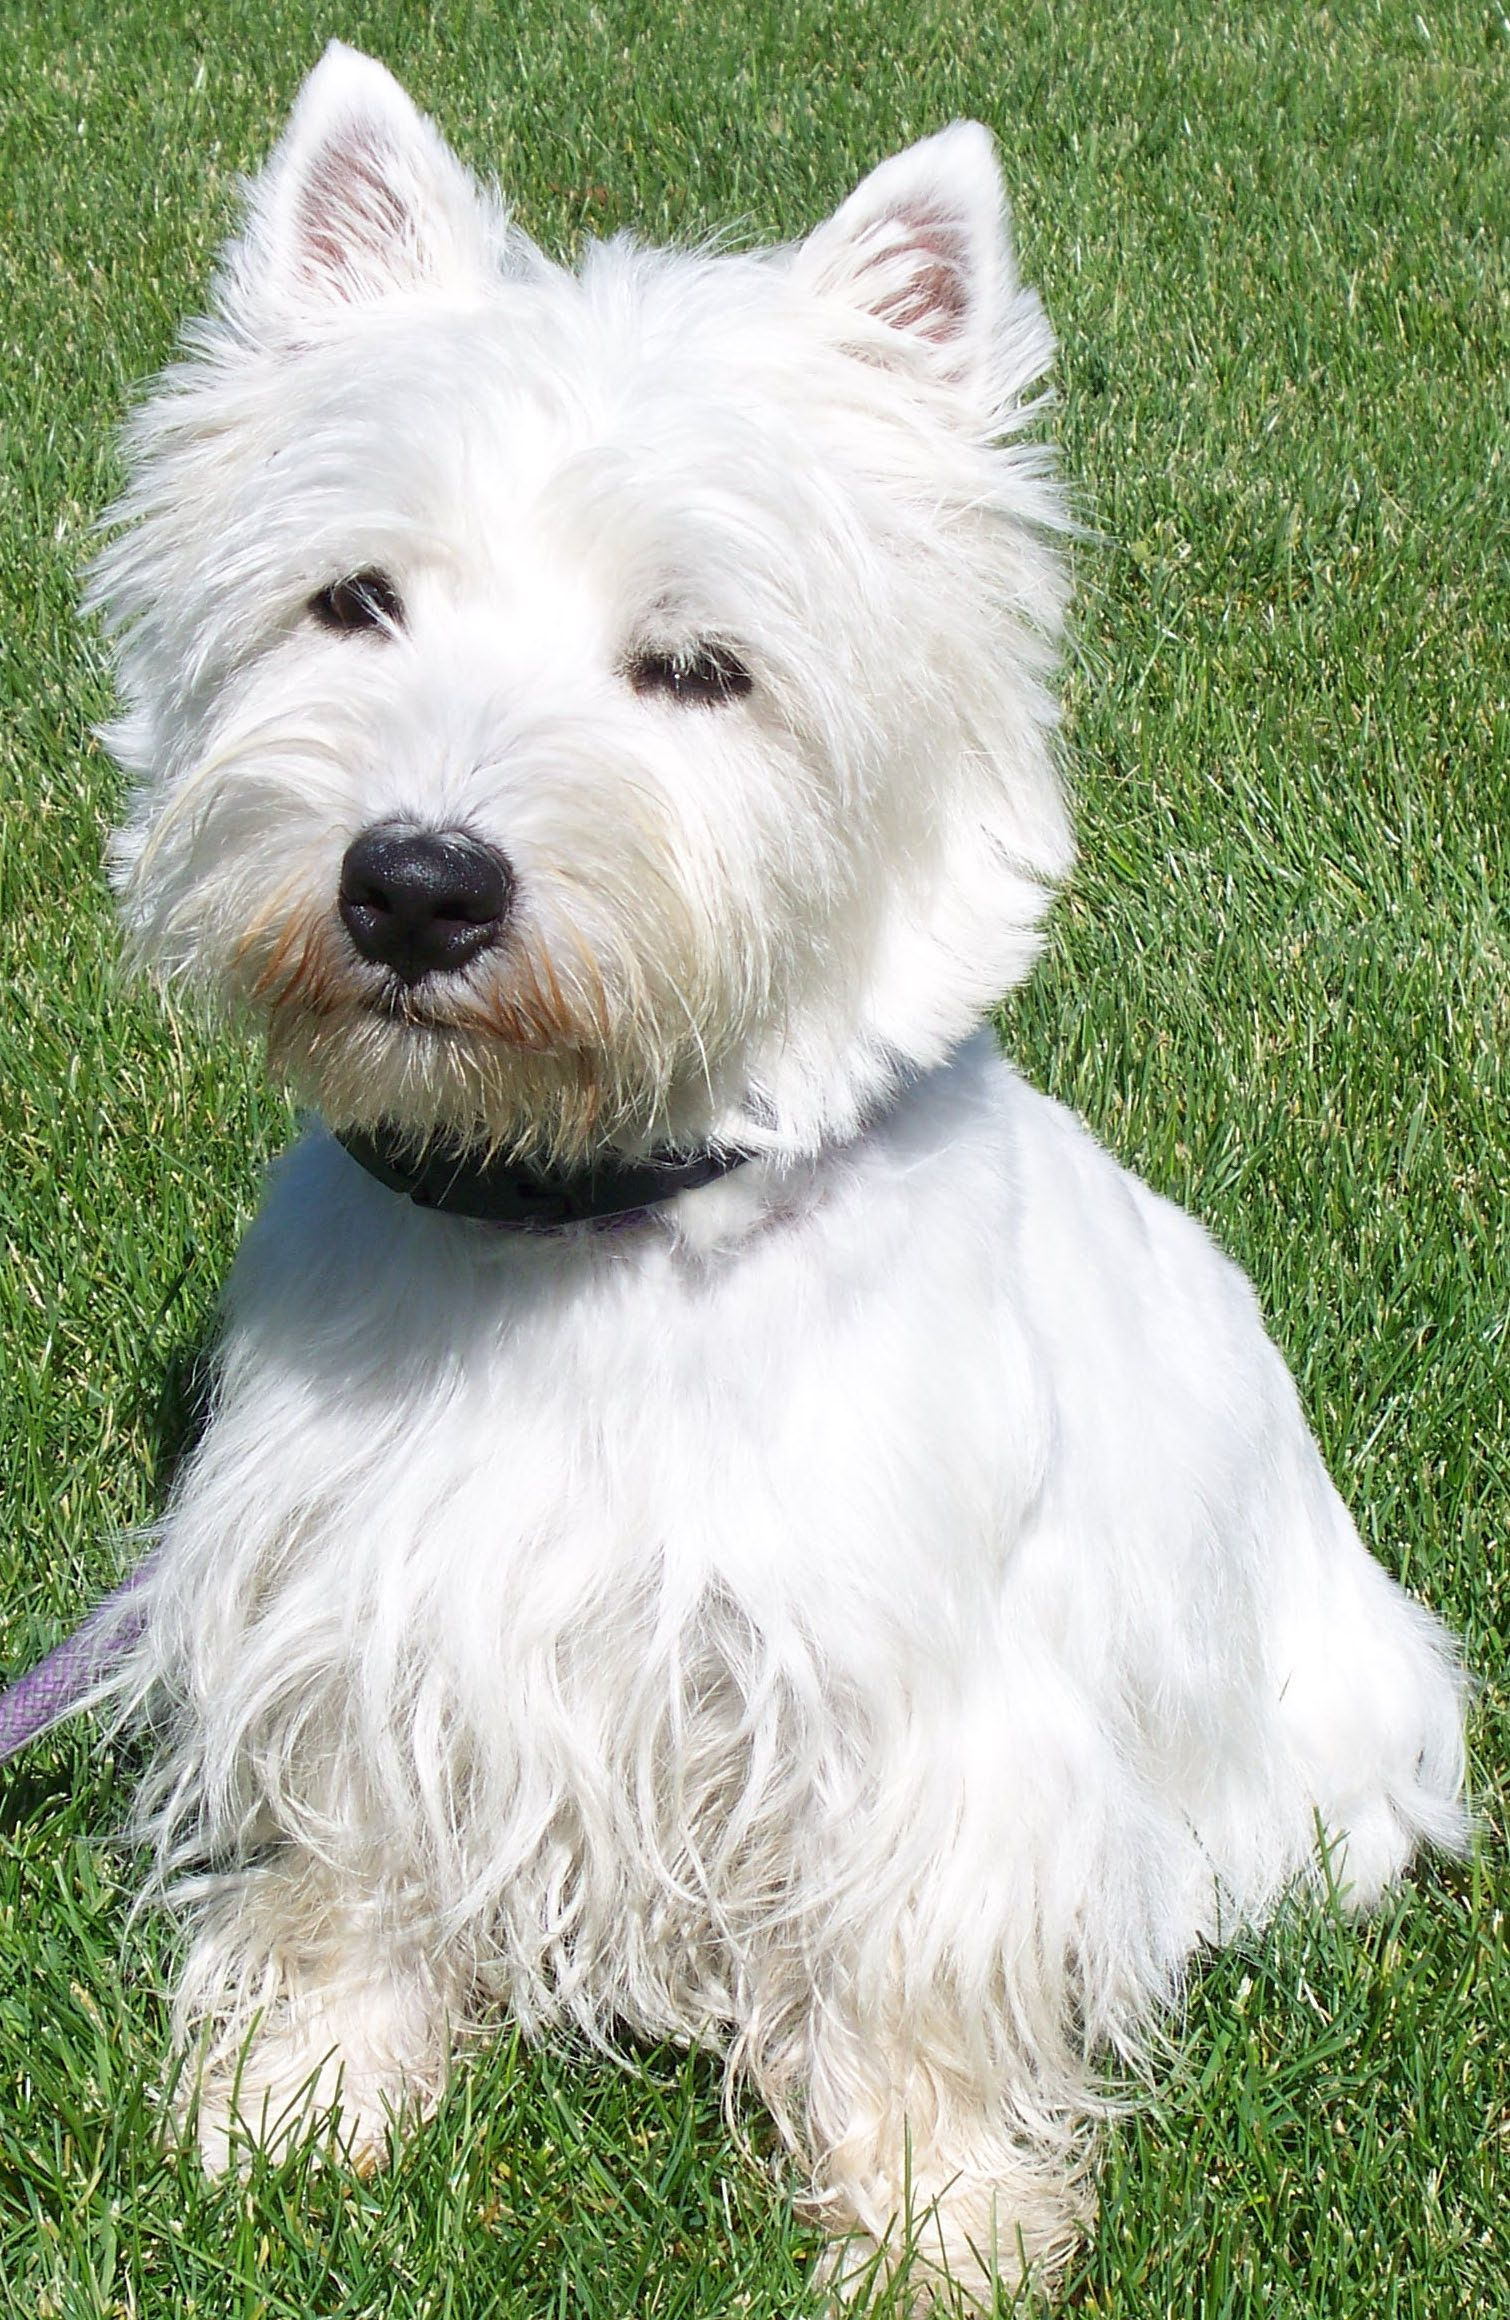 Westie S Skin And Could Allow You Can Take Your Pet S Skin You Can Find Out More Details At The Link Of Th West Highland Terrier Dog Ownership Scottie Dog